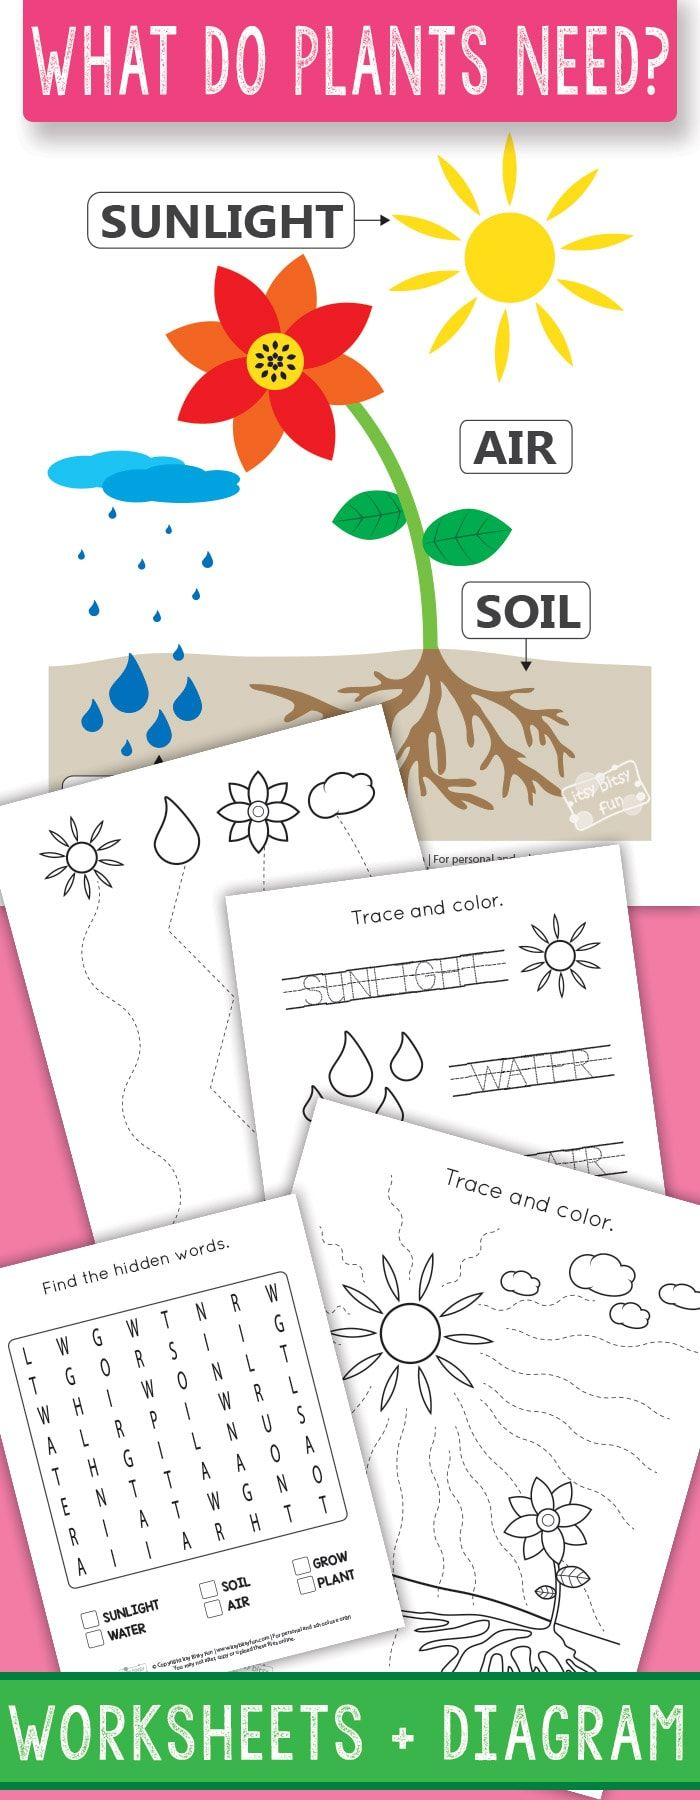 worksheet What Plants Need To Grow Worksheet Ks1 2554 best plants images on pinterest school autism and fruits what do need to grow worksheets